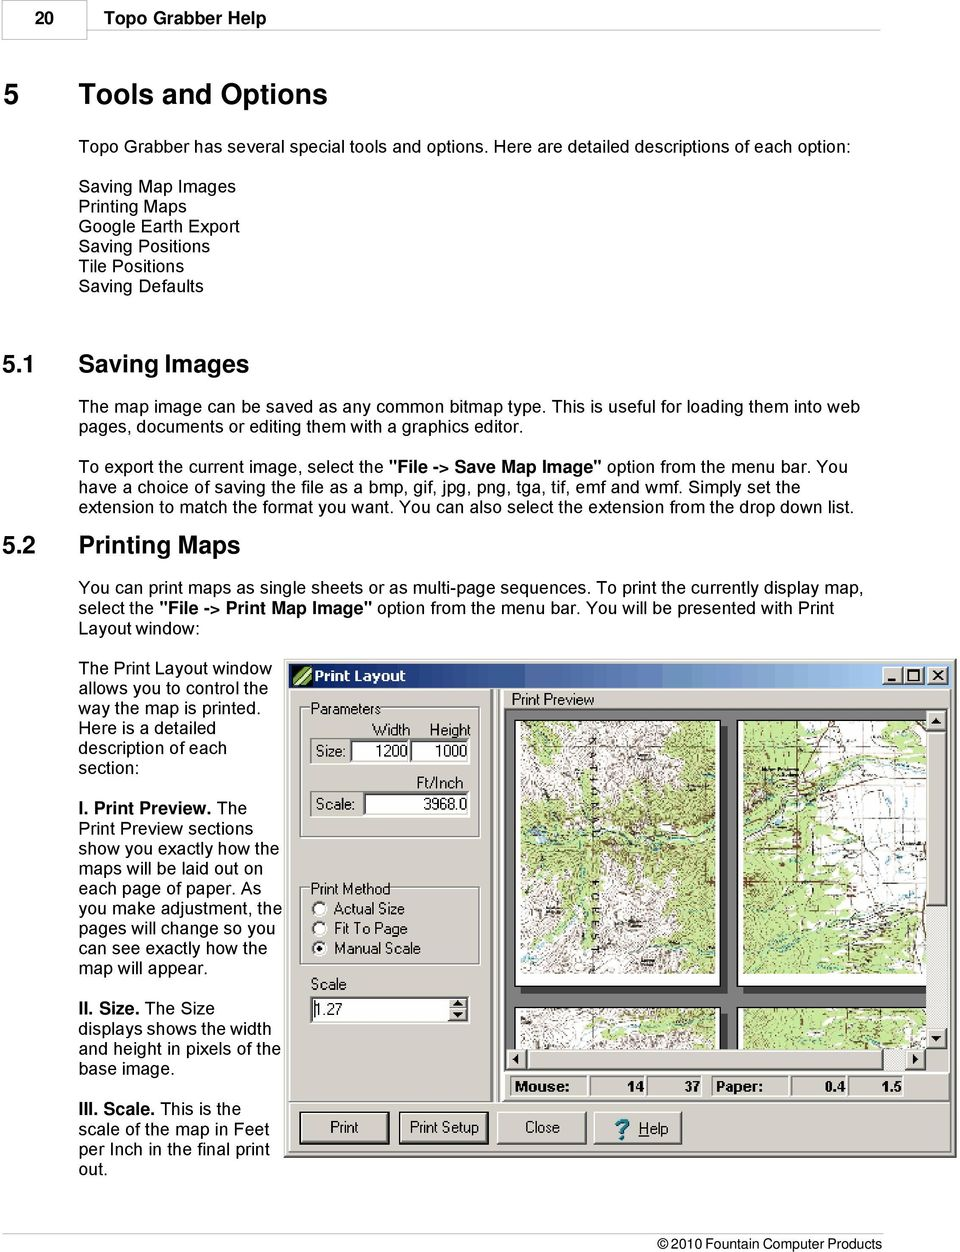 1 Saving Images The map image can be saved as any common bitmap type. This is useful for loading them into web pages, documents or editing them with a graphics editor.